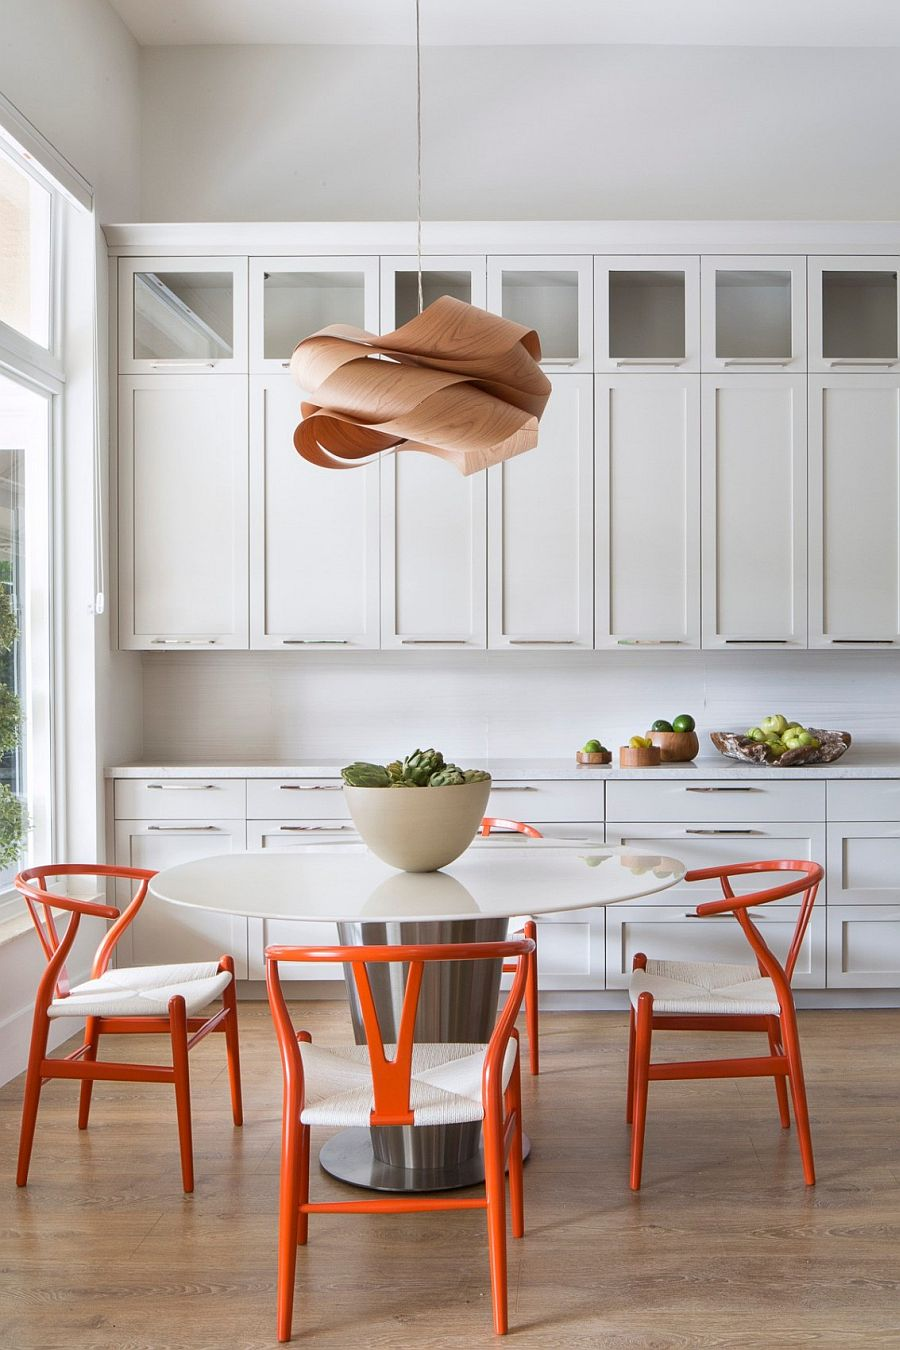 Gorgeous Link Pendant light above the breakfast nook